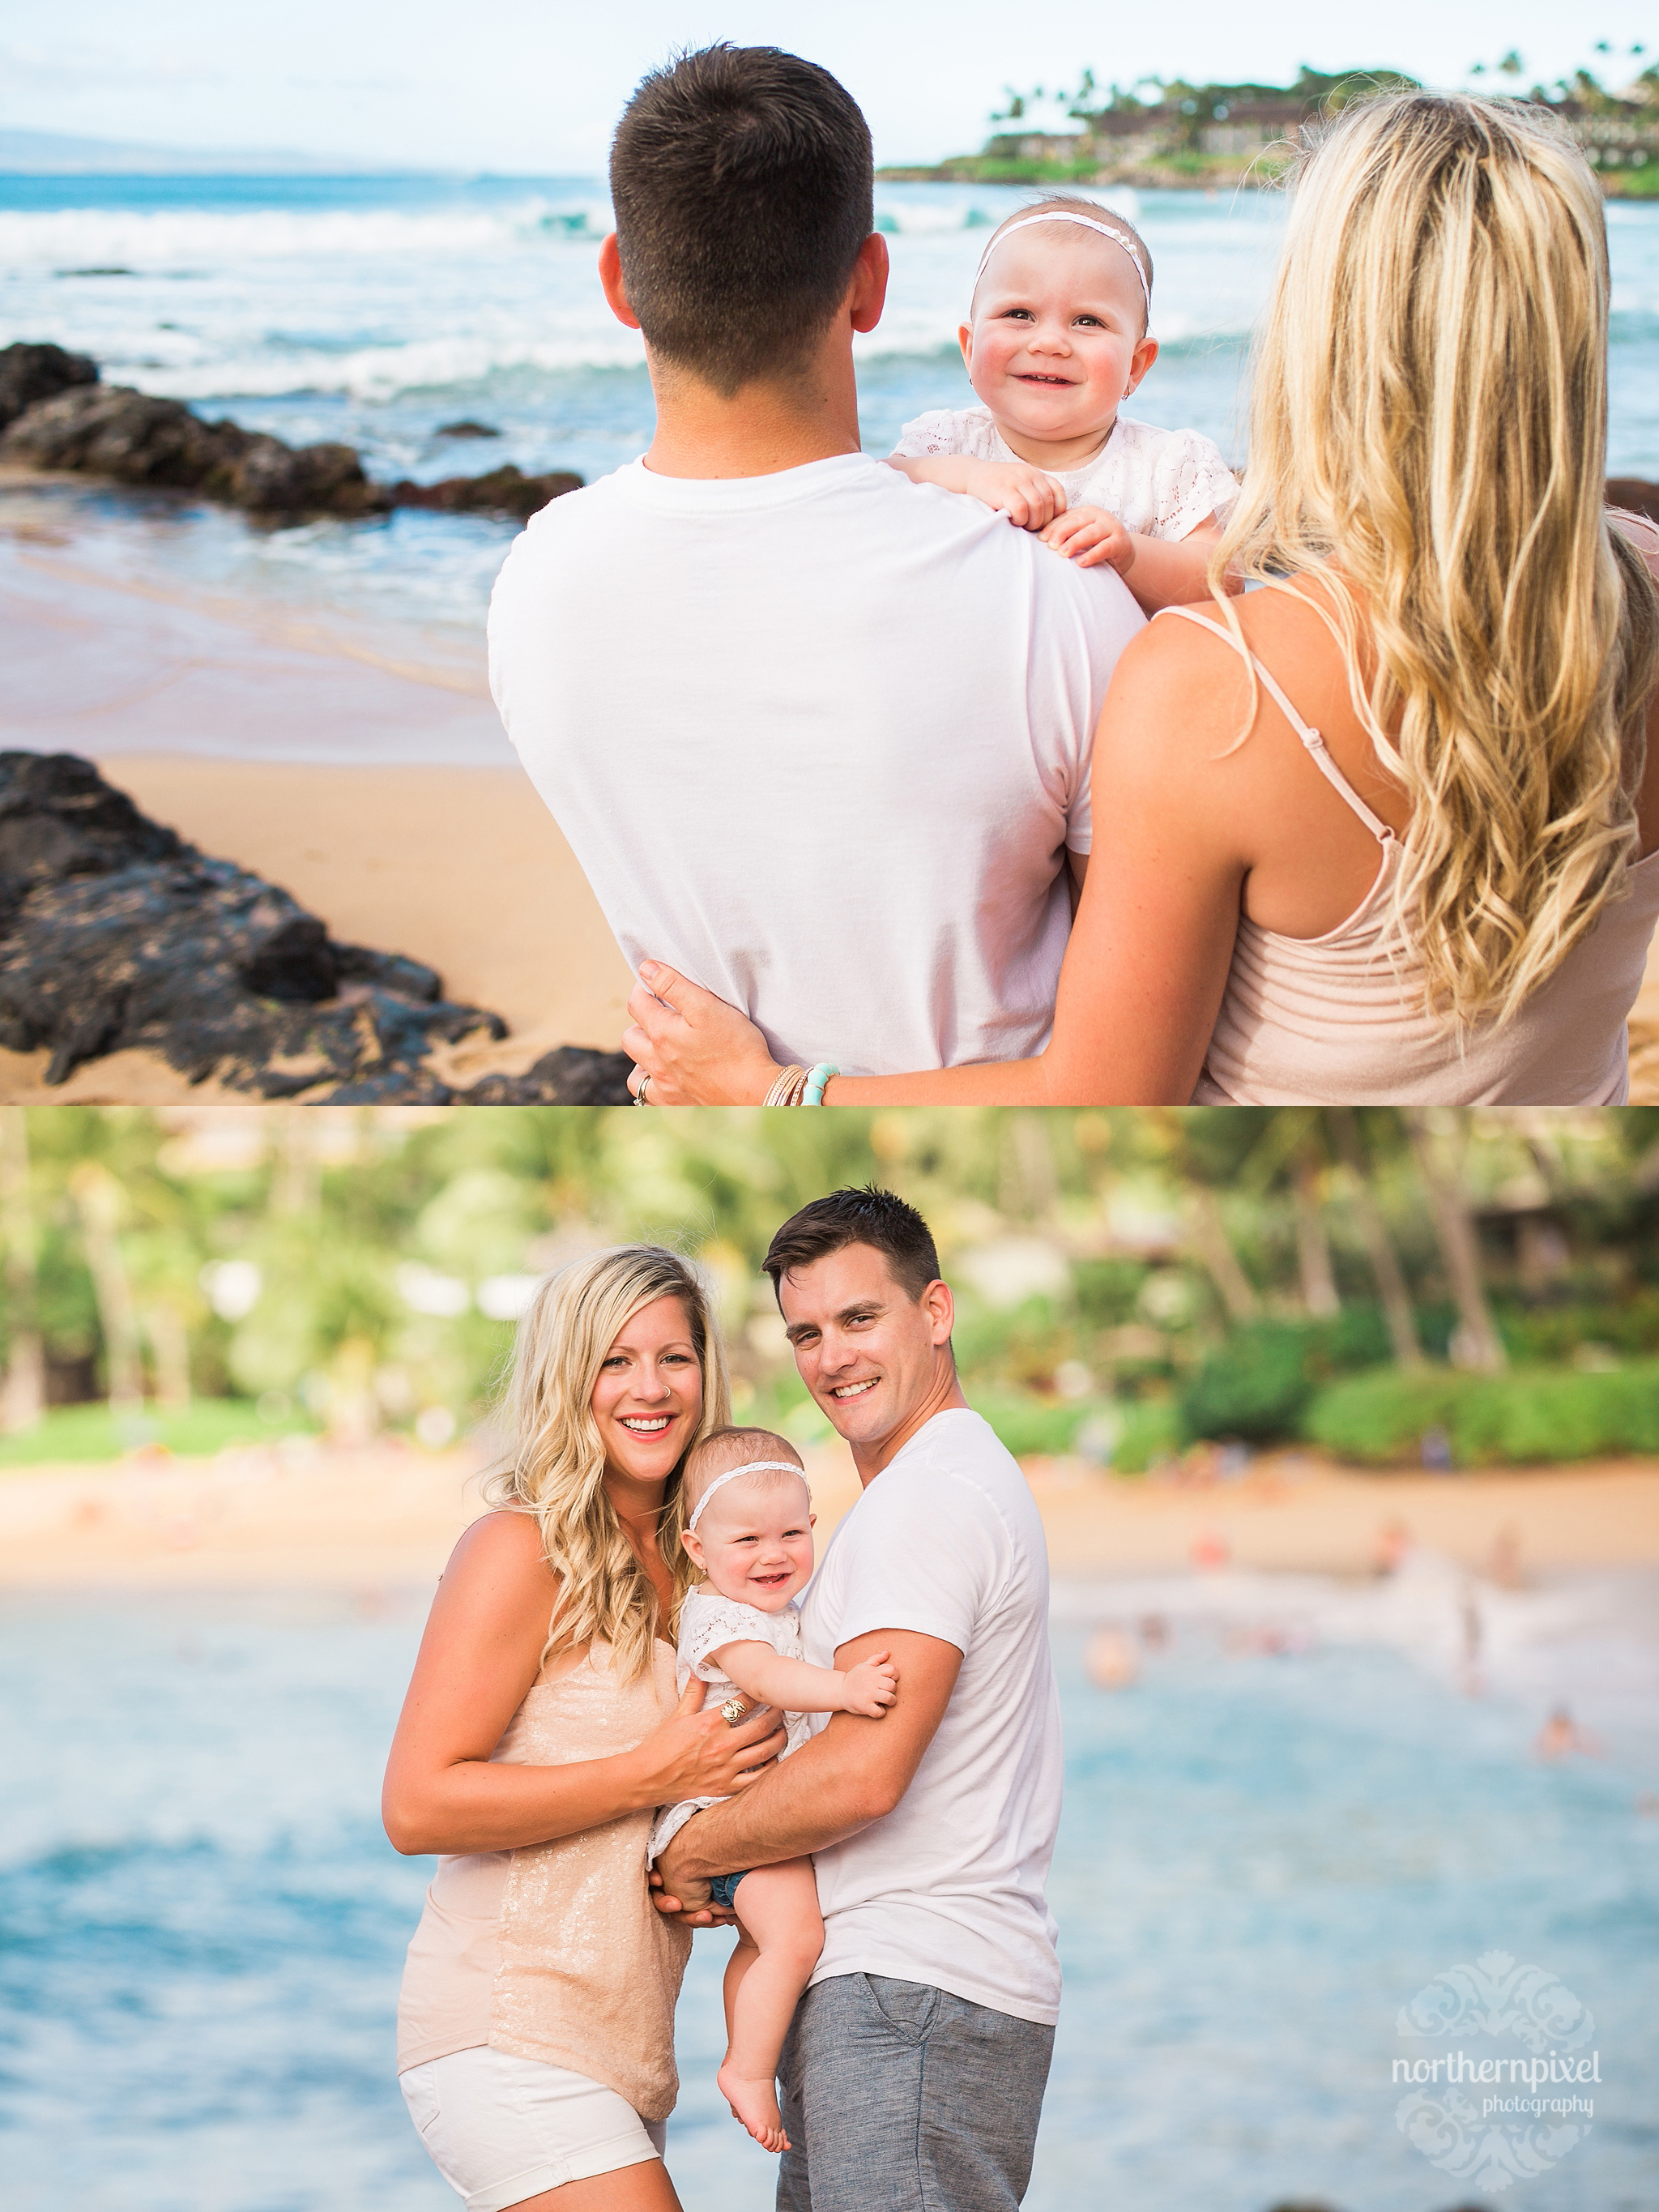 Family Photos at the Beach